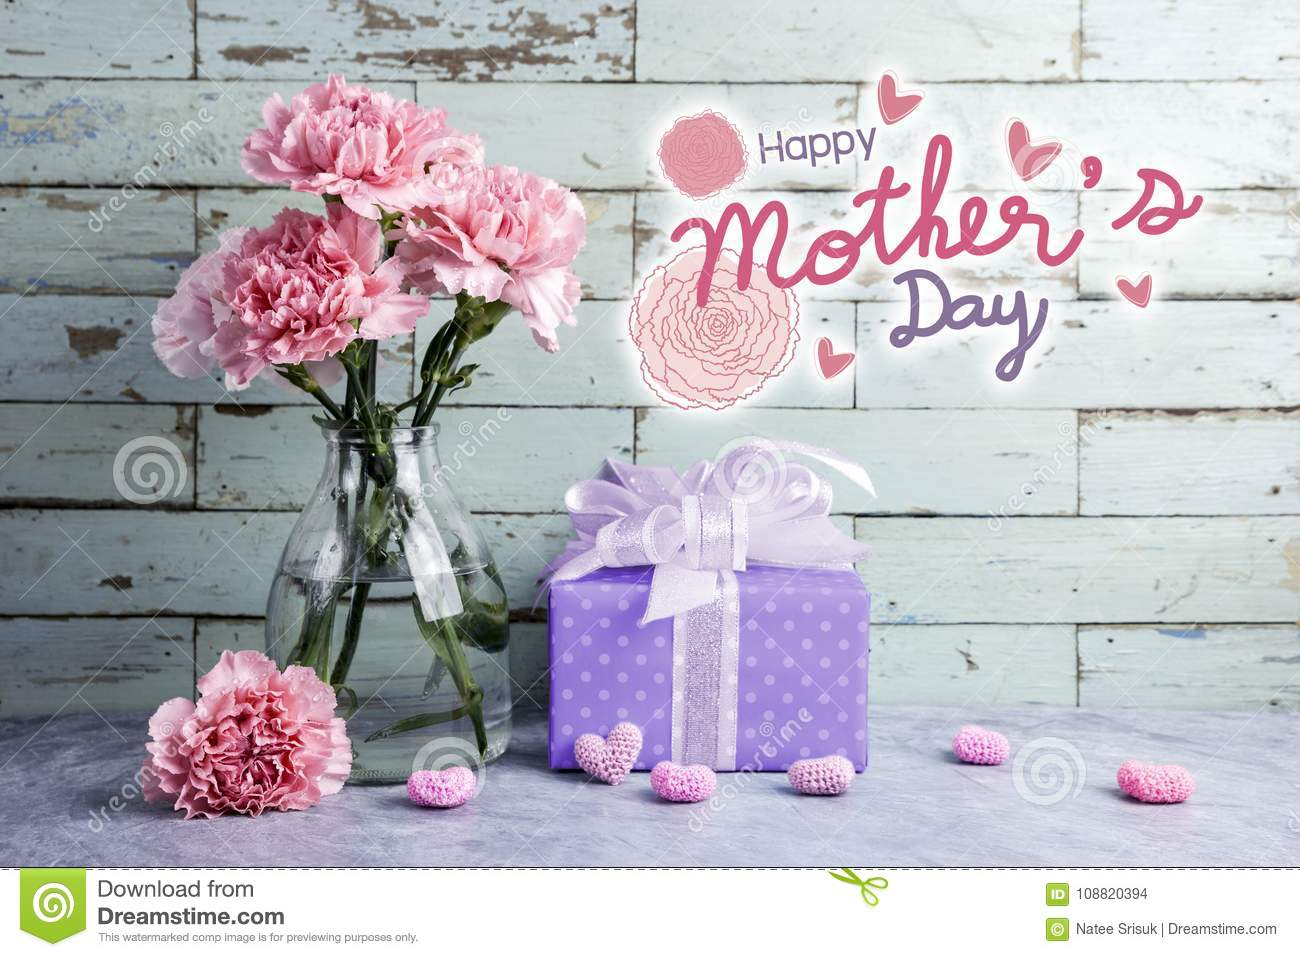 Happy mothers day message on wood background and pink carnation